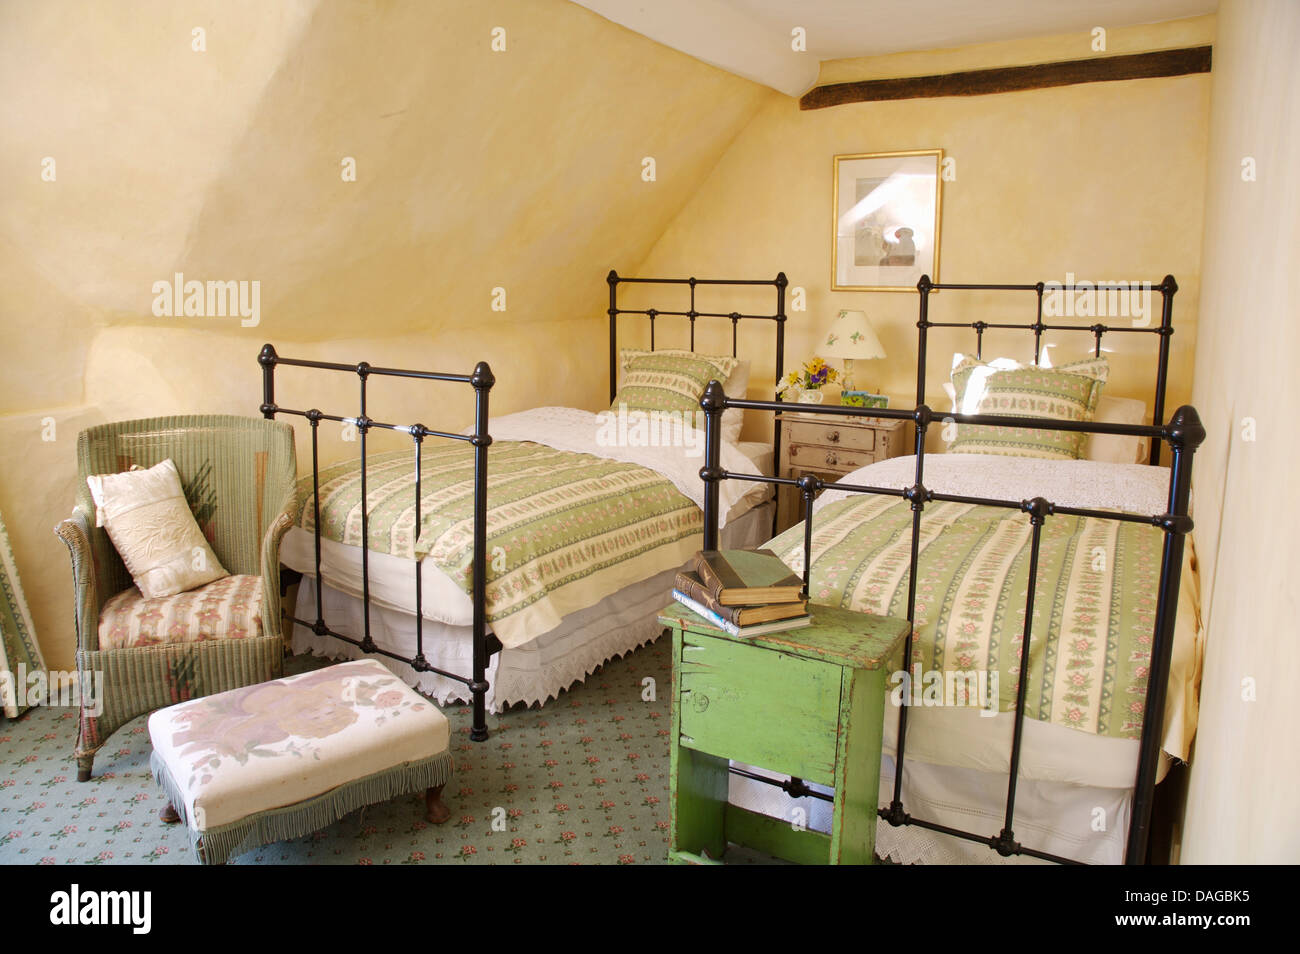 Wrought iron twin beds with green throws in attic bedroom with ...